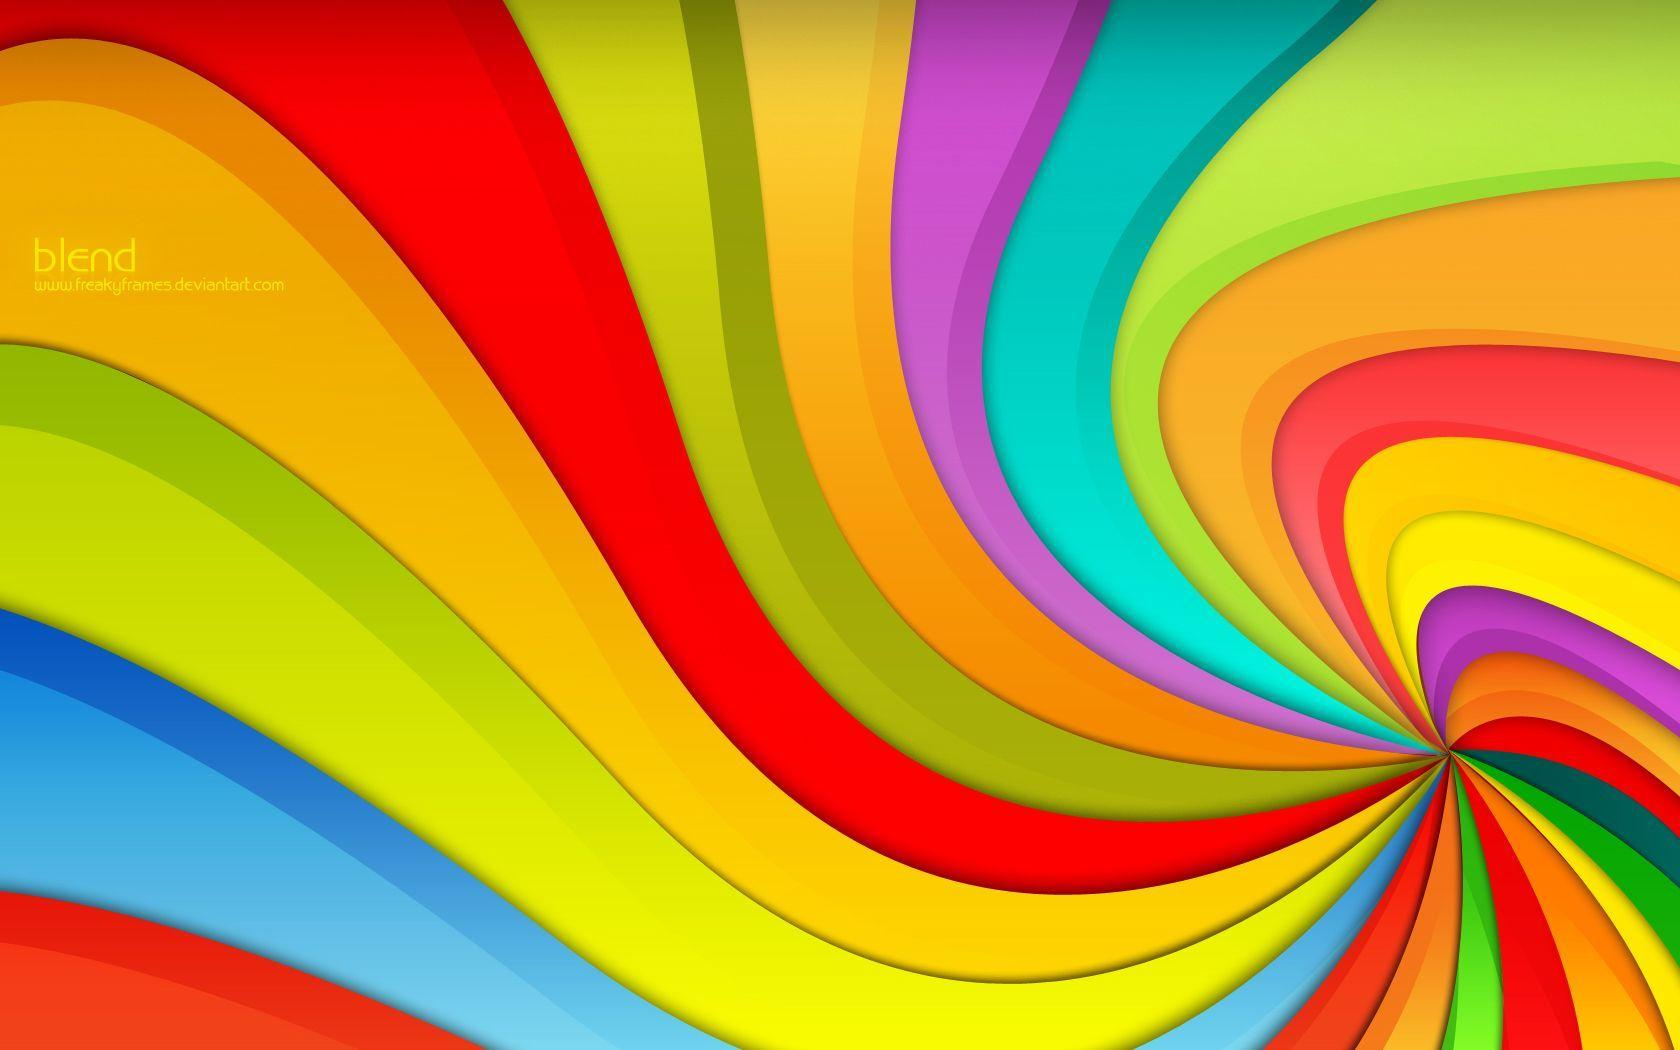 colorful wallpapers hd - wallpaper cave